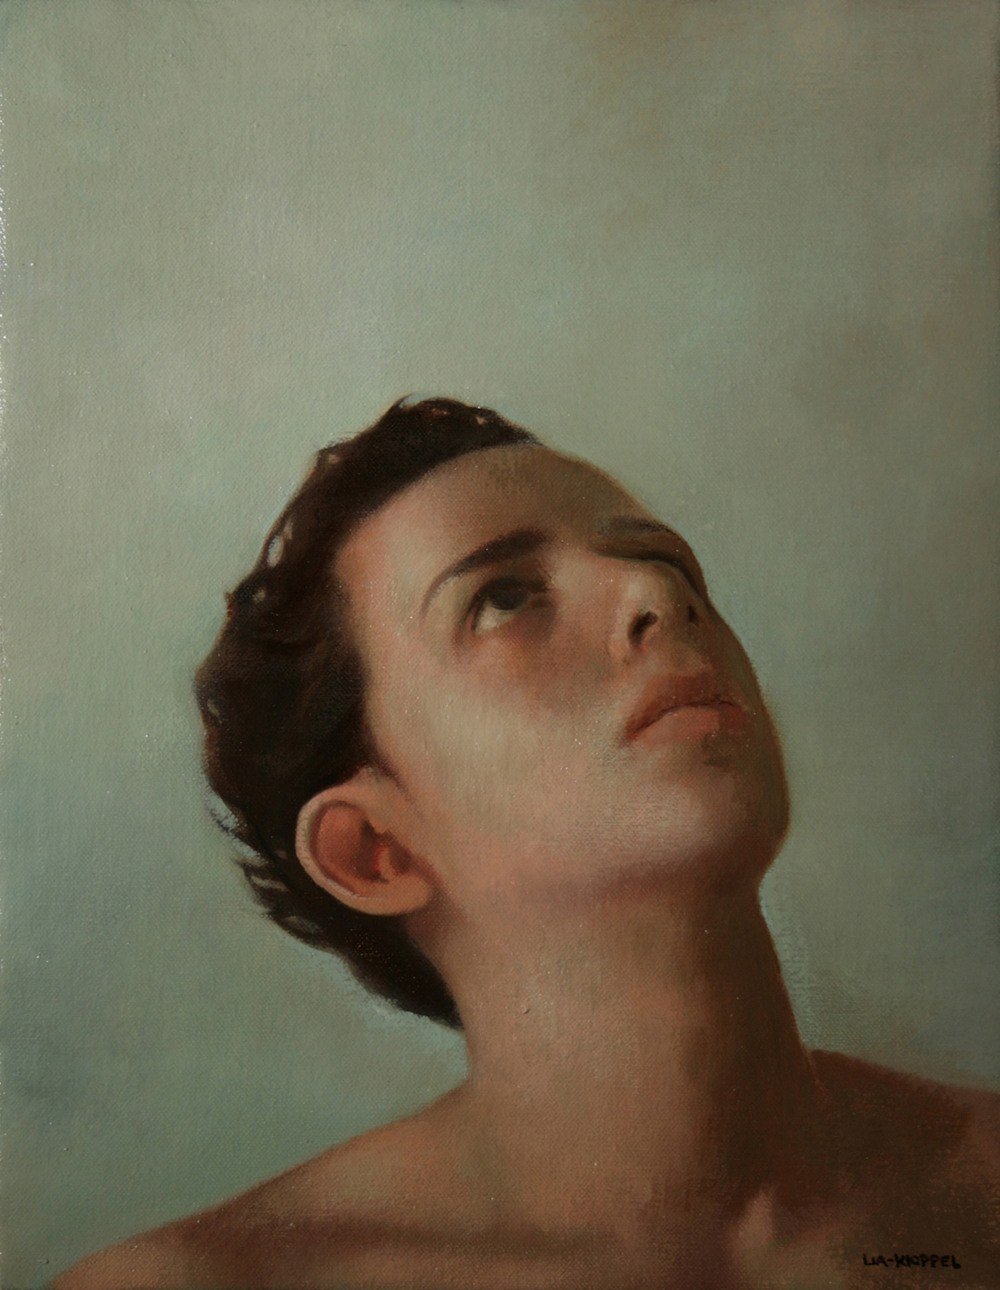 Man Looking Up, 2007, Oil on linen, 14 x 11 inches, Private collection